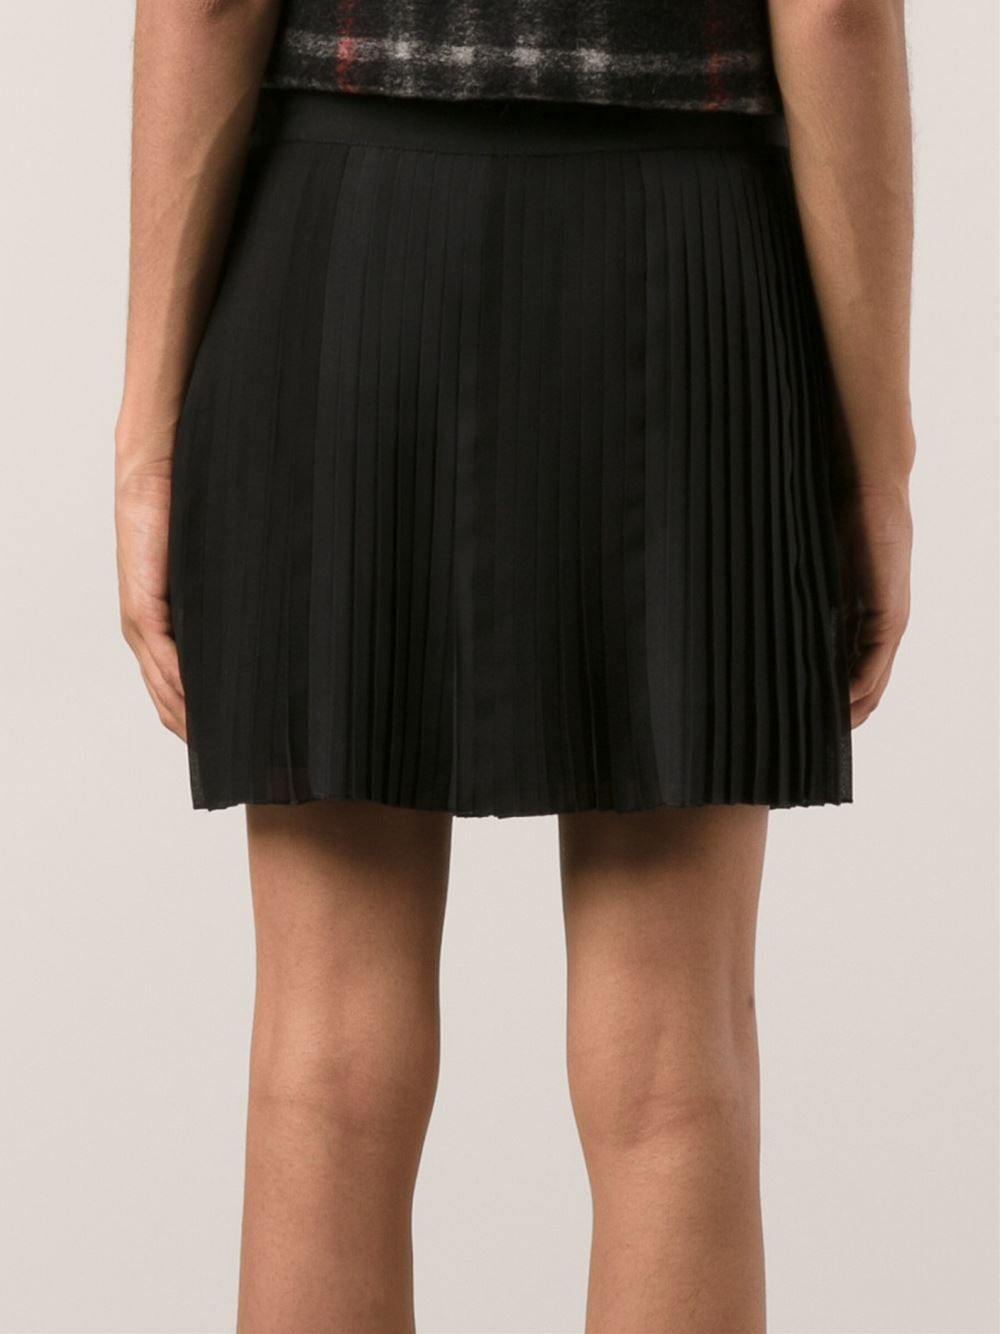 Vanessa bruno athé 'Babethe' Pleated Mini Skirt in Black | Lyst